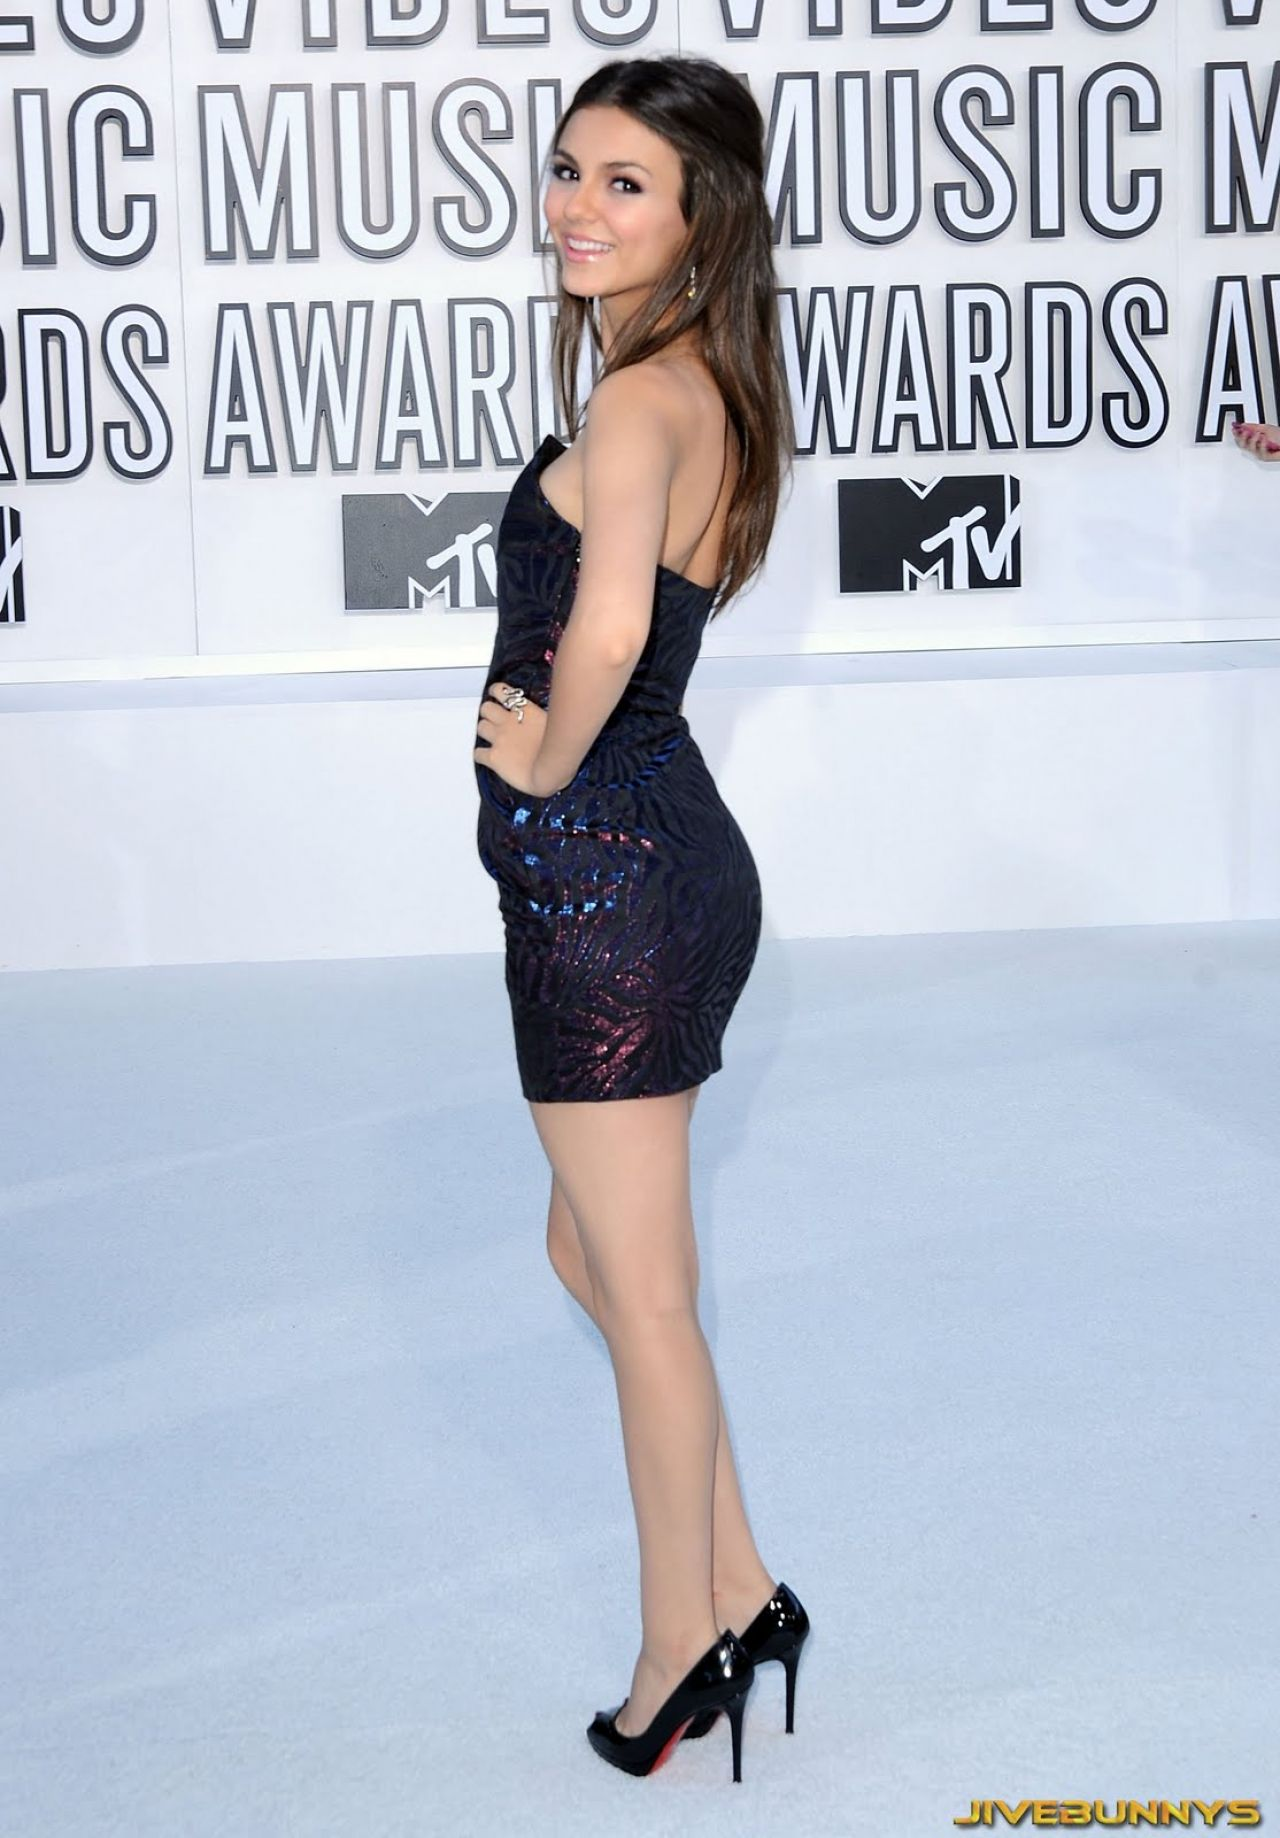 Victoria Justice 21st Birthday Photo Collection